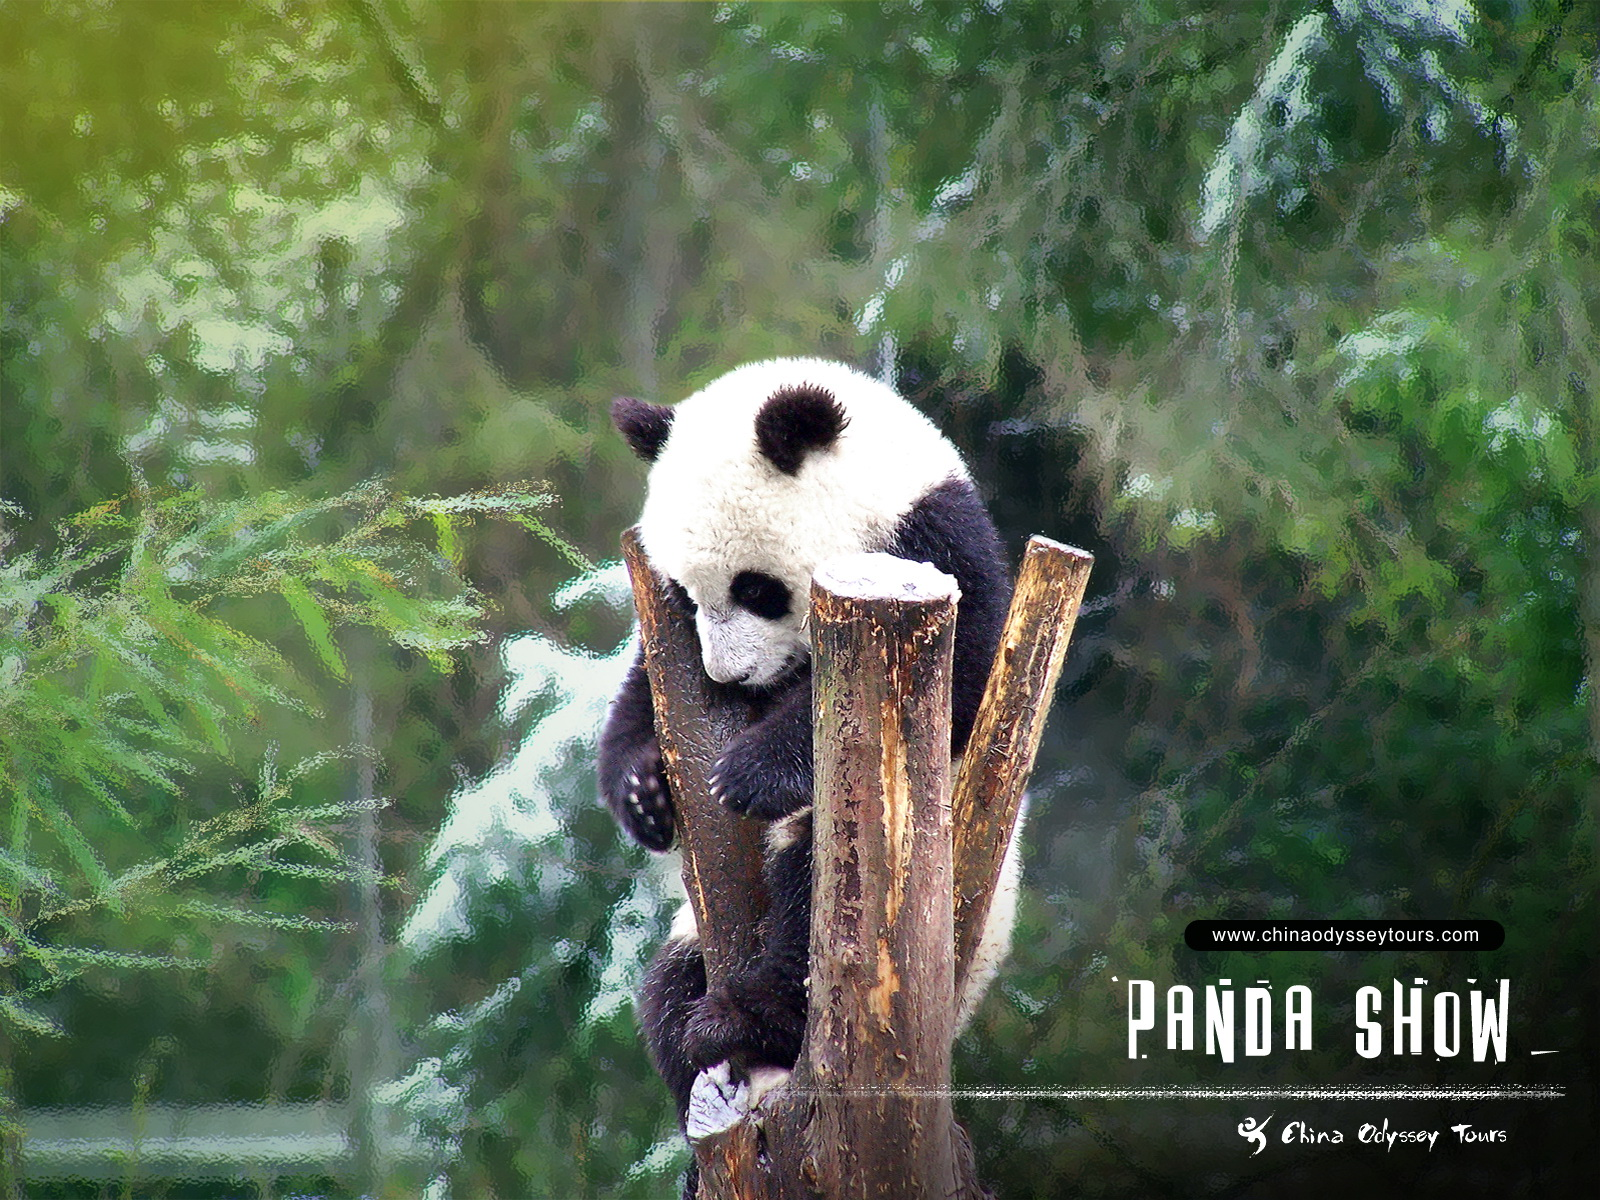 Beautiful Wallpapers: panda bear wallpaper: world-beautifulwallpapers.blogspot.com/2013/06/panda-bear-wallpaper...